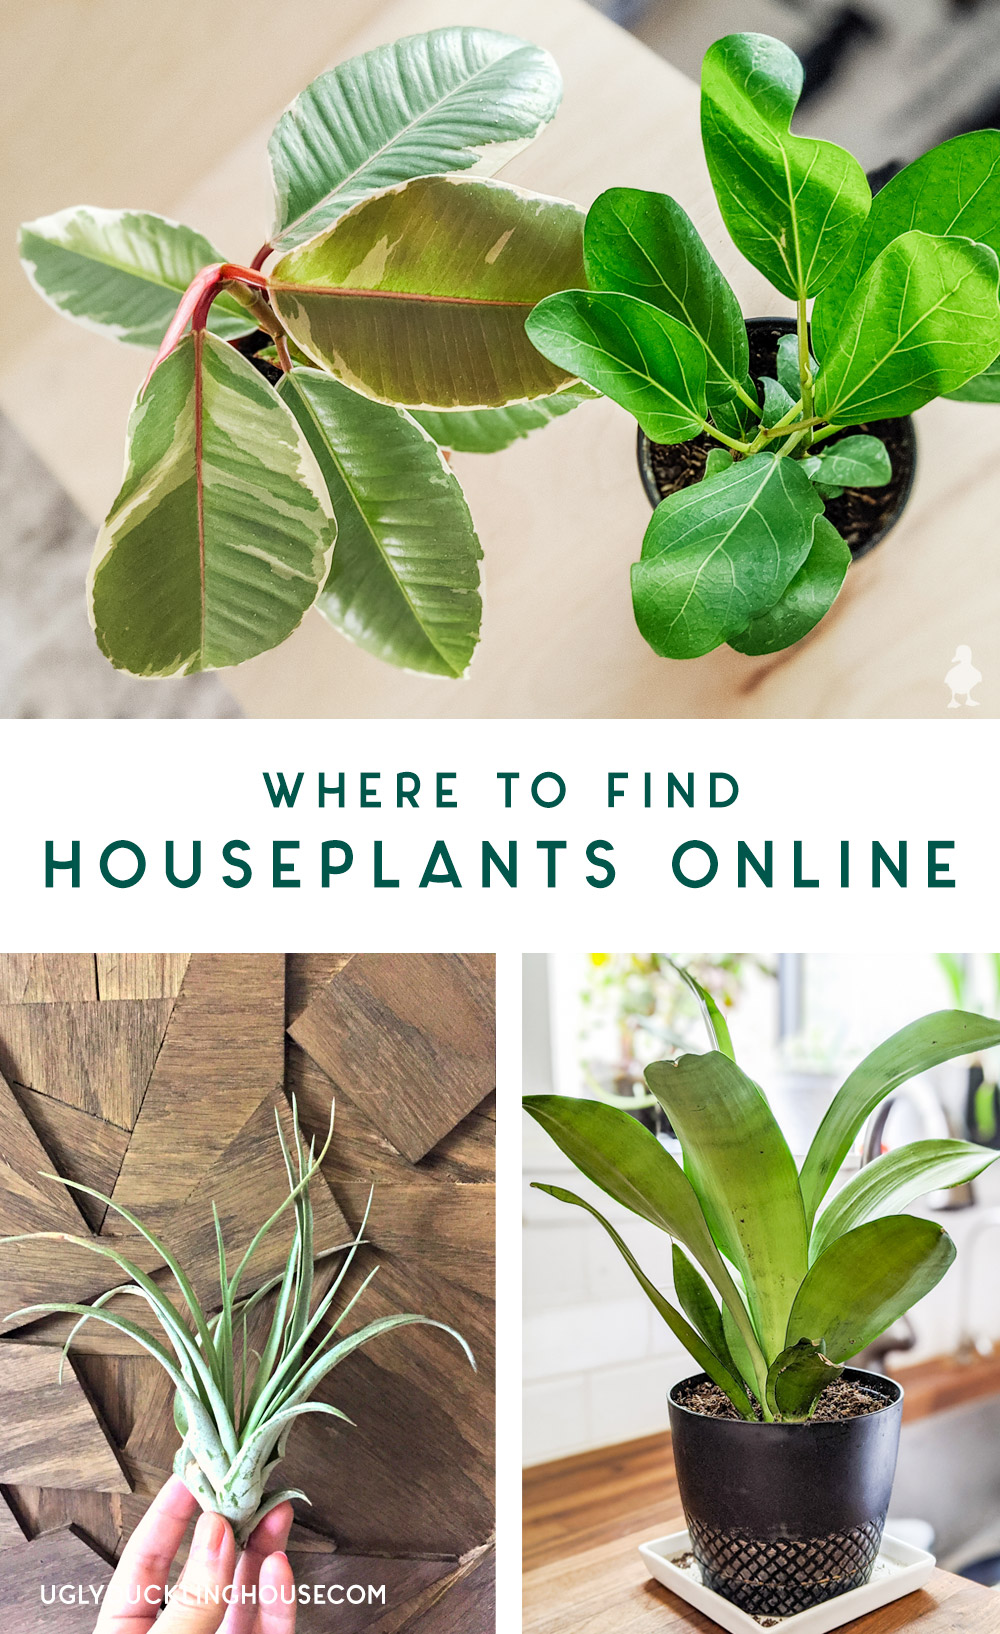 where to find houseplants online